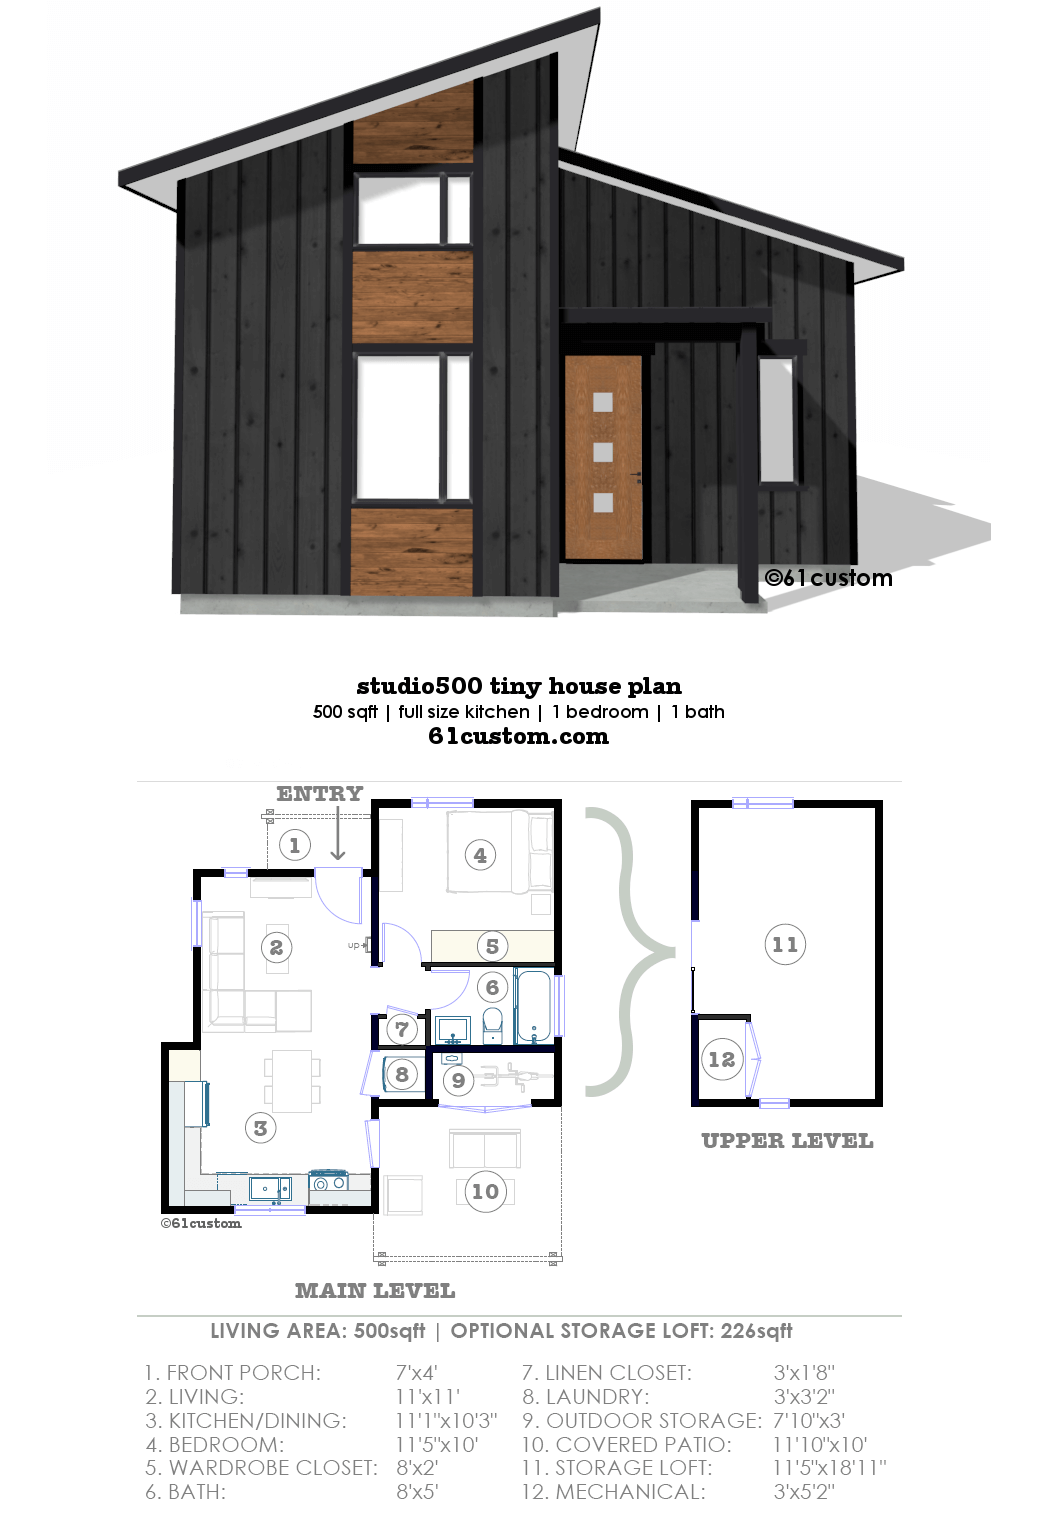 studio500 modern tiny house plan 61custom. Black Bedroom Furniture Sets. Home Design Ideas